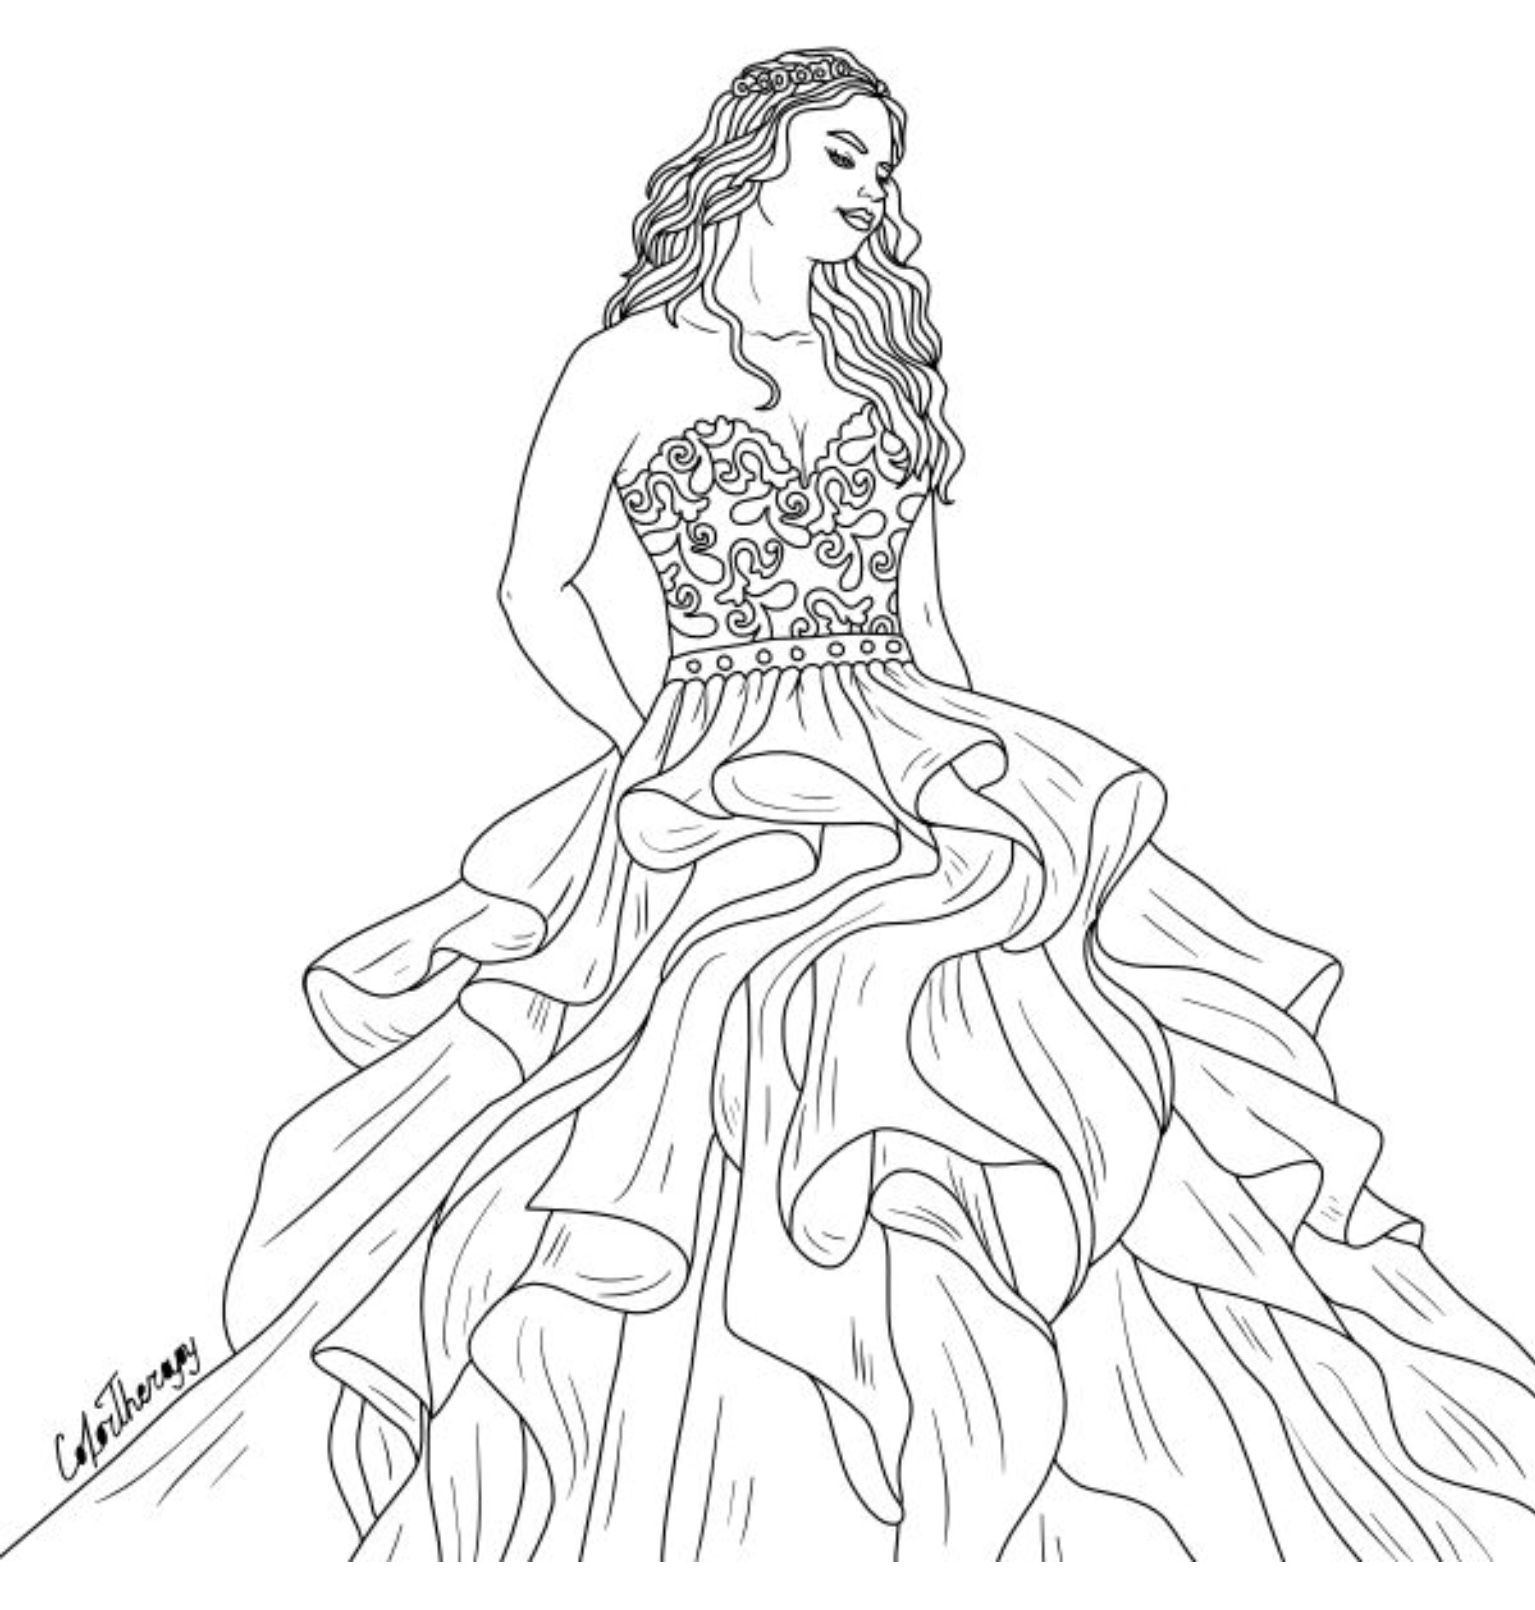 Coloring pages for adults app ~ Pin by Color Therapy App on Color Therapy Coloring Pages ...